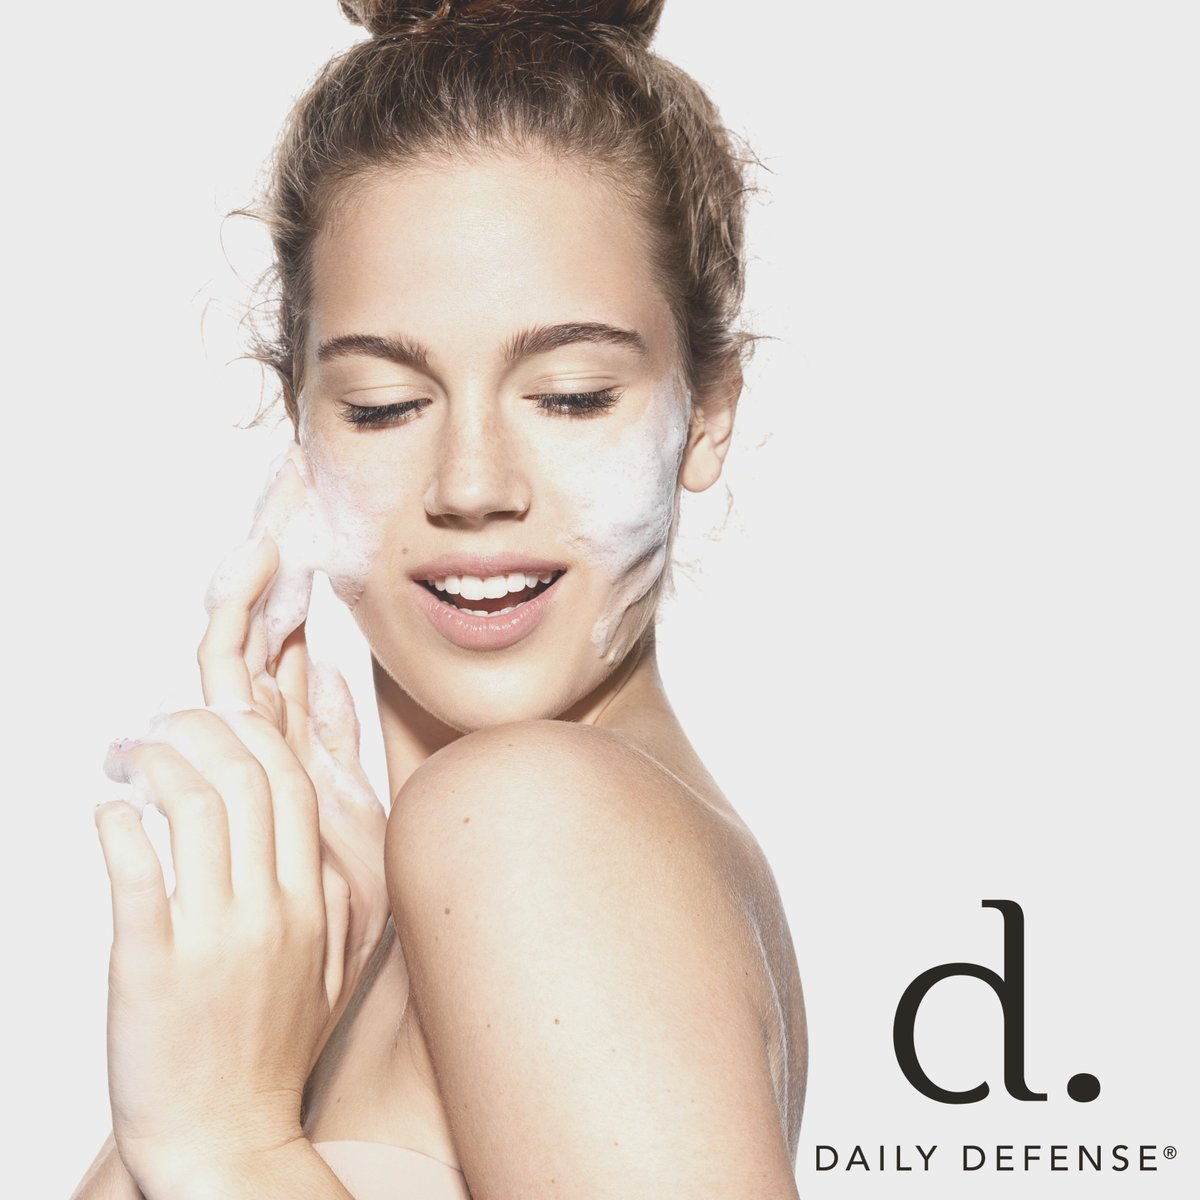 Good #skin. Good #mood. Good day. #DailyDefense #skincare #selfcare #takecareofyourskin #healthandbeauty #radiantskin #antiaging #complexion #skinbrightening #smoothskin #skincare #skincareproducts #cleanbeauty #nontoxicbeauty #crueltyfreeskincare #skincaretips #facial #facials